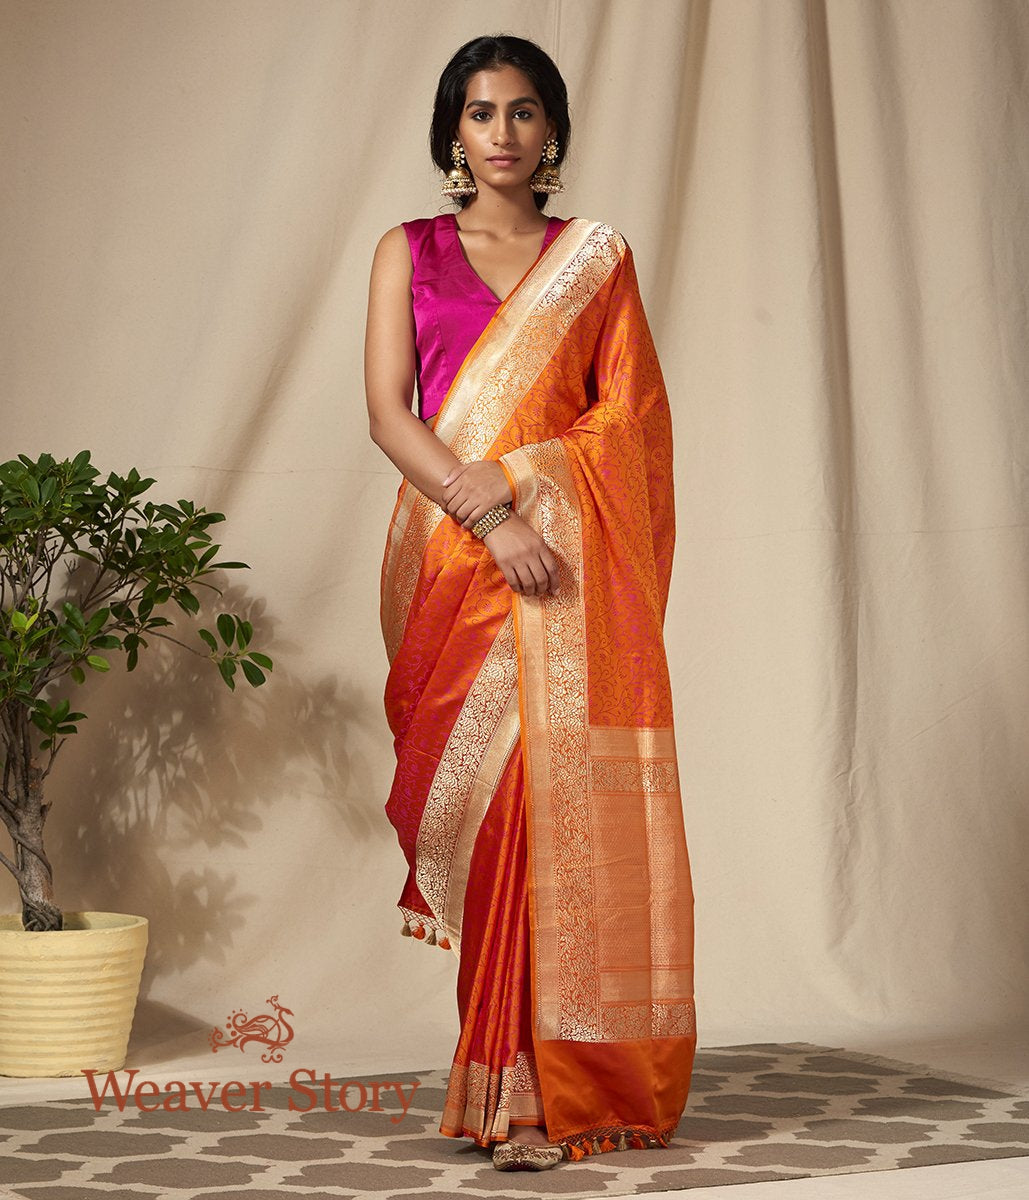 Handwoven Orange and Red Dual Tone Banarasi Tanchoi Saree